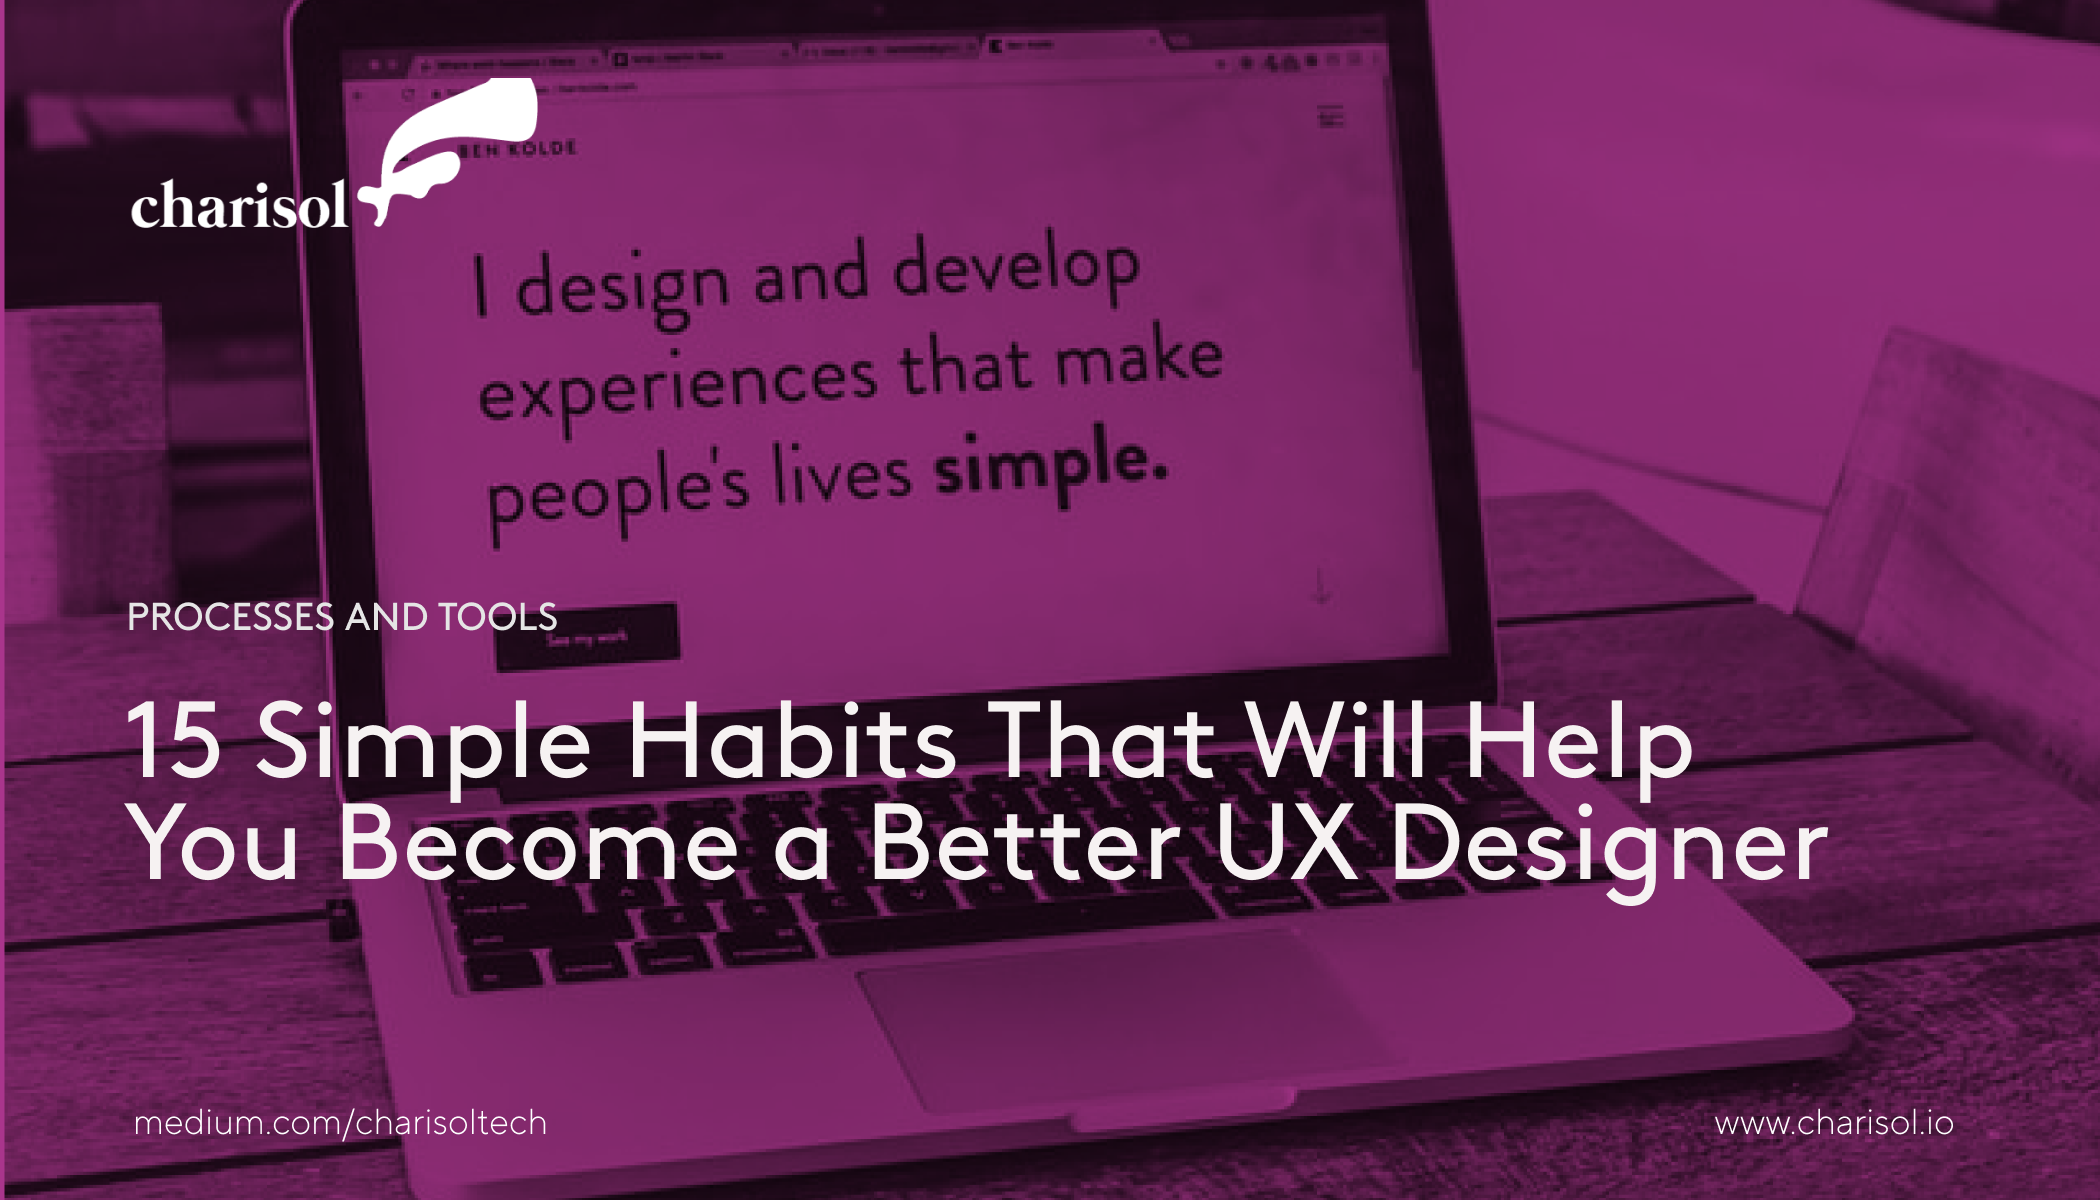 15 Simple Habits That Will Help You Become a Better UX Designer